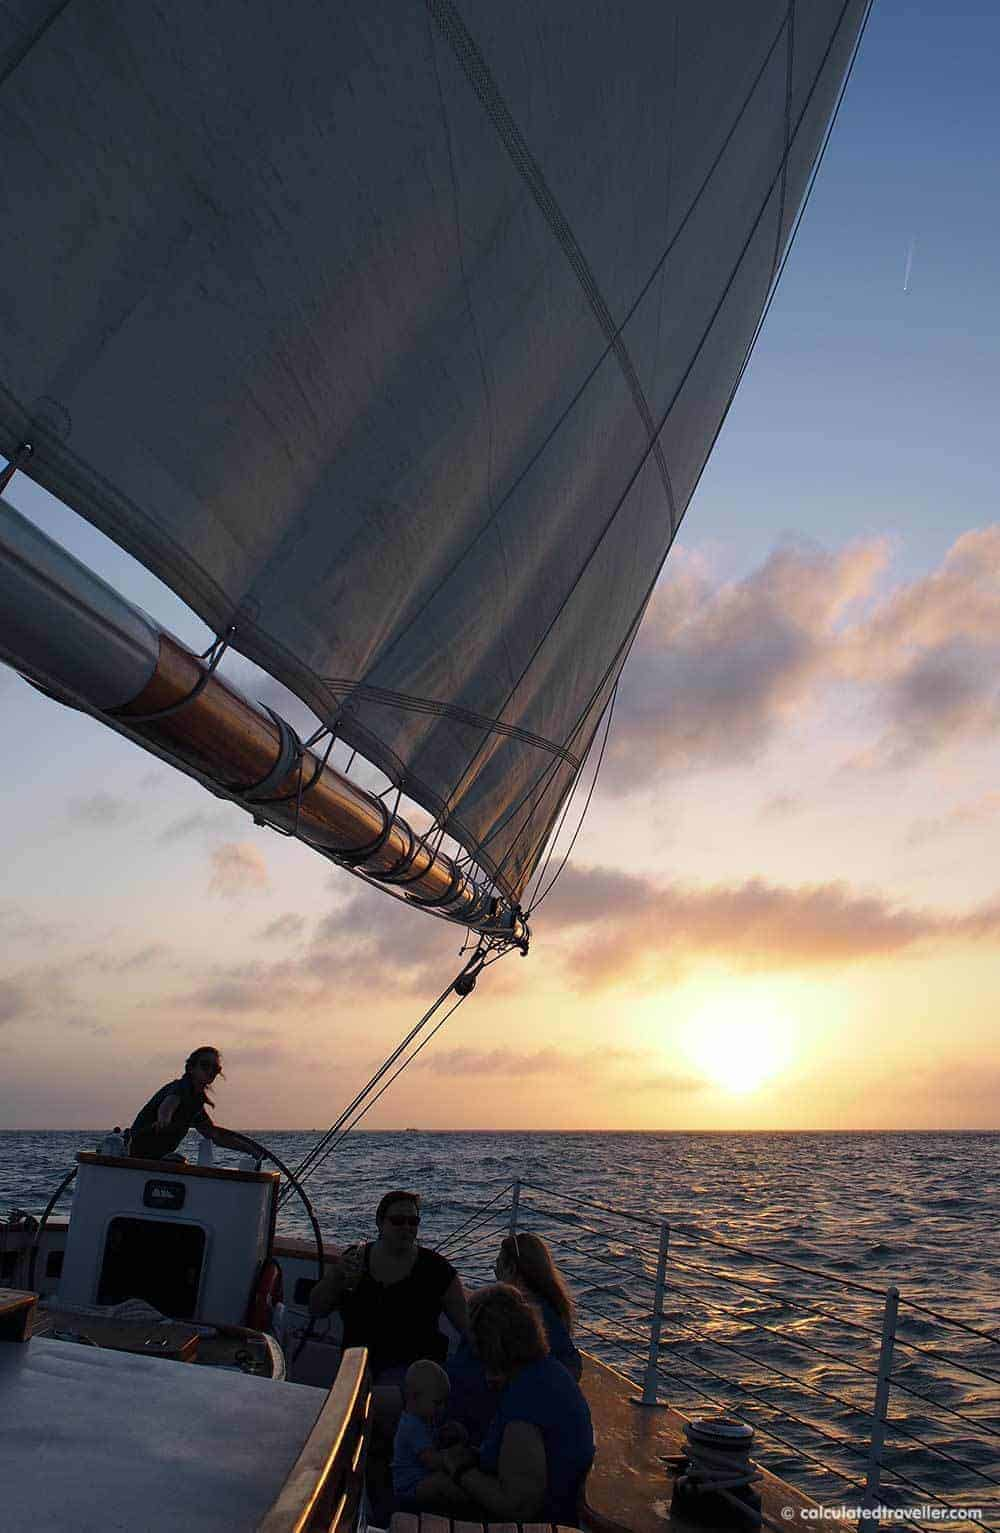 A One Day Key West Florida No Holds Barred Adventure! Sailing onboard the Schooner 2